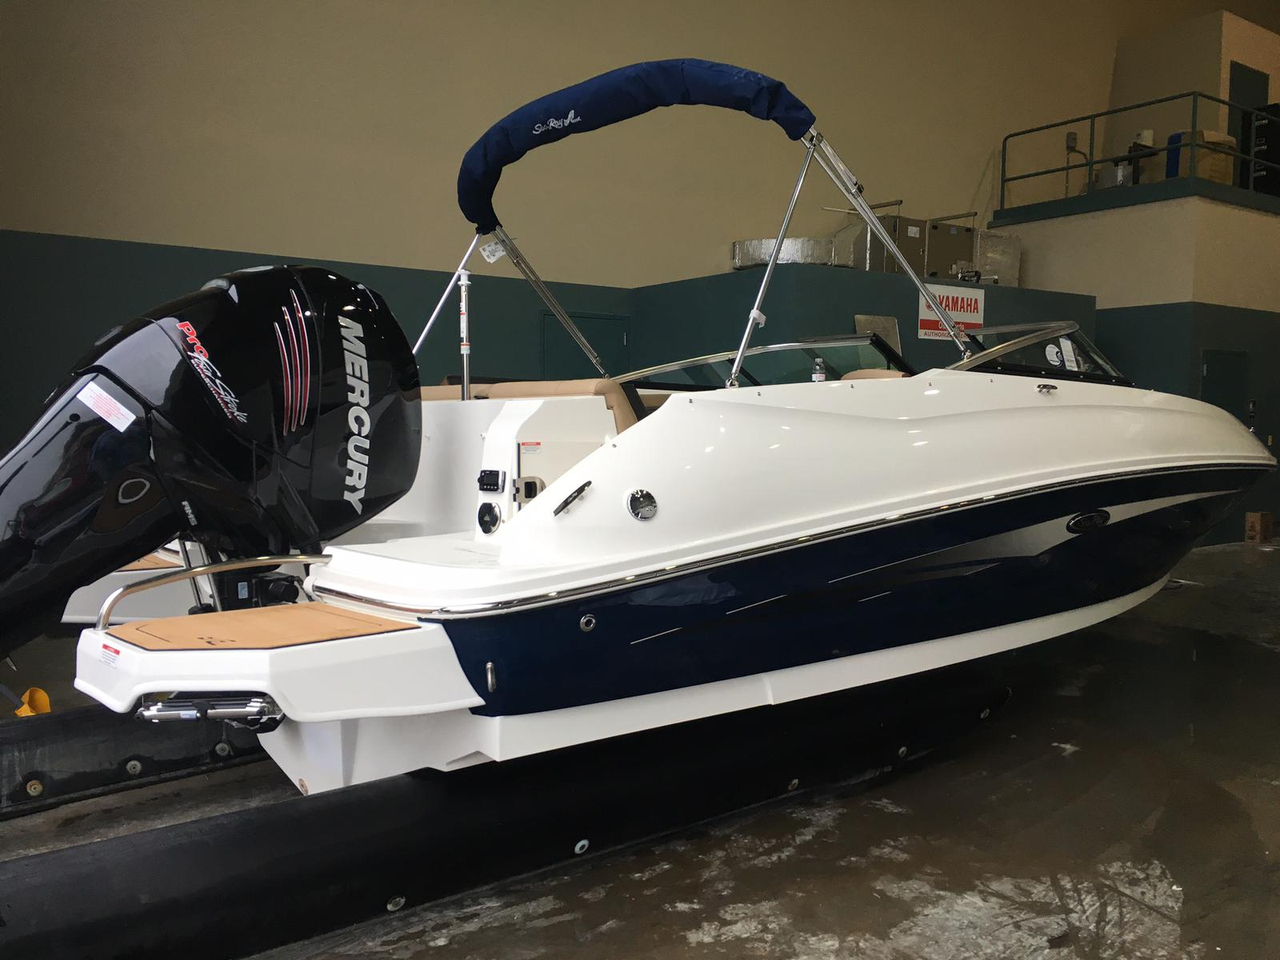 2016 new sea ray 240 sundeck outboard bowrider boat for